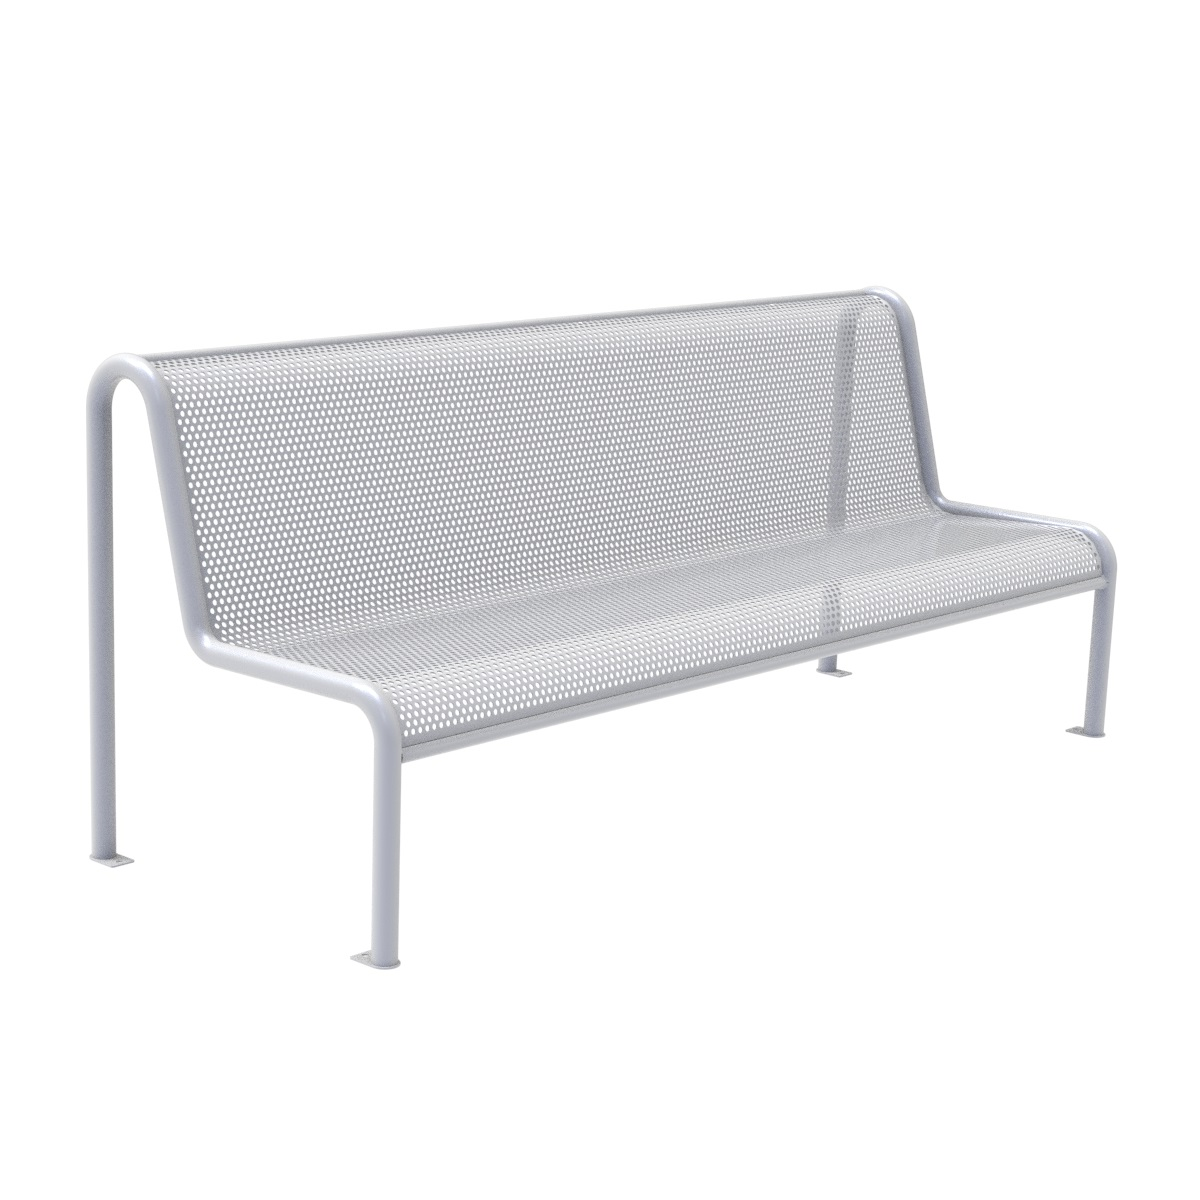 Perforated plate Bench forniture urban element parks and gardens